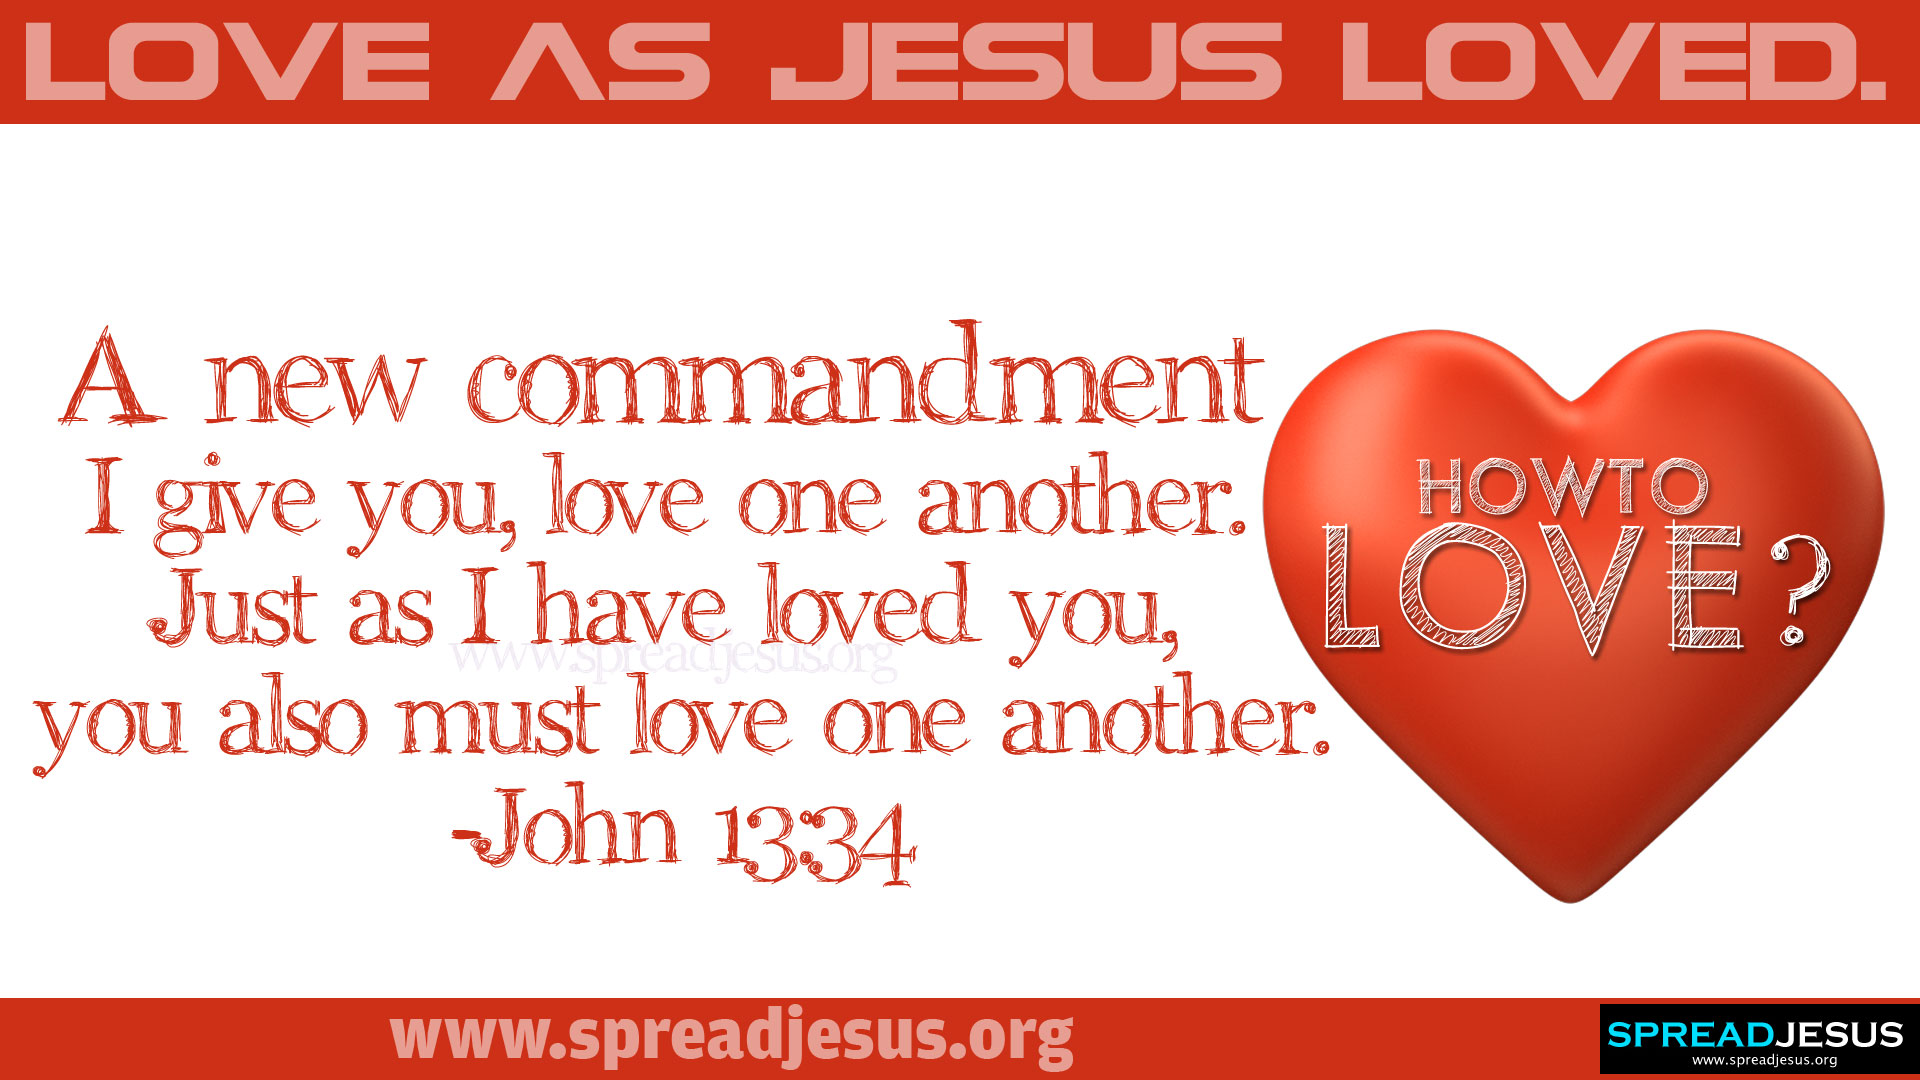 How to love? LOVE AS JESUS LOVED